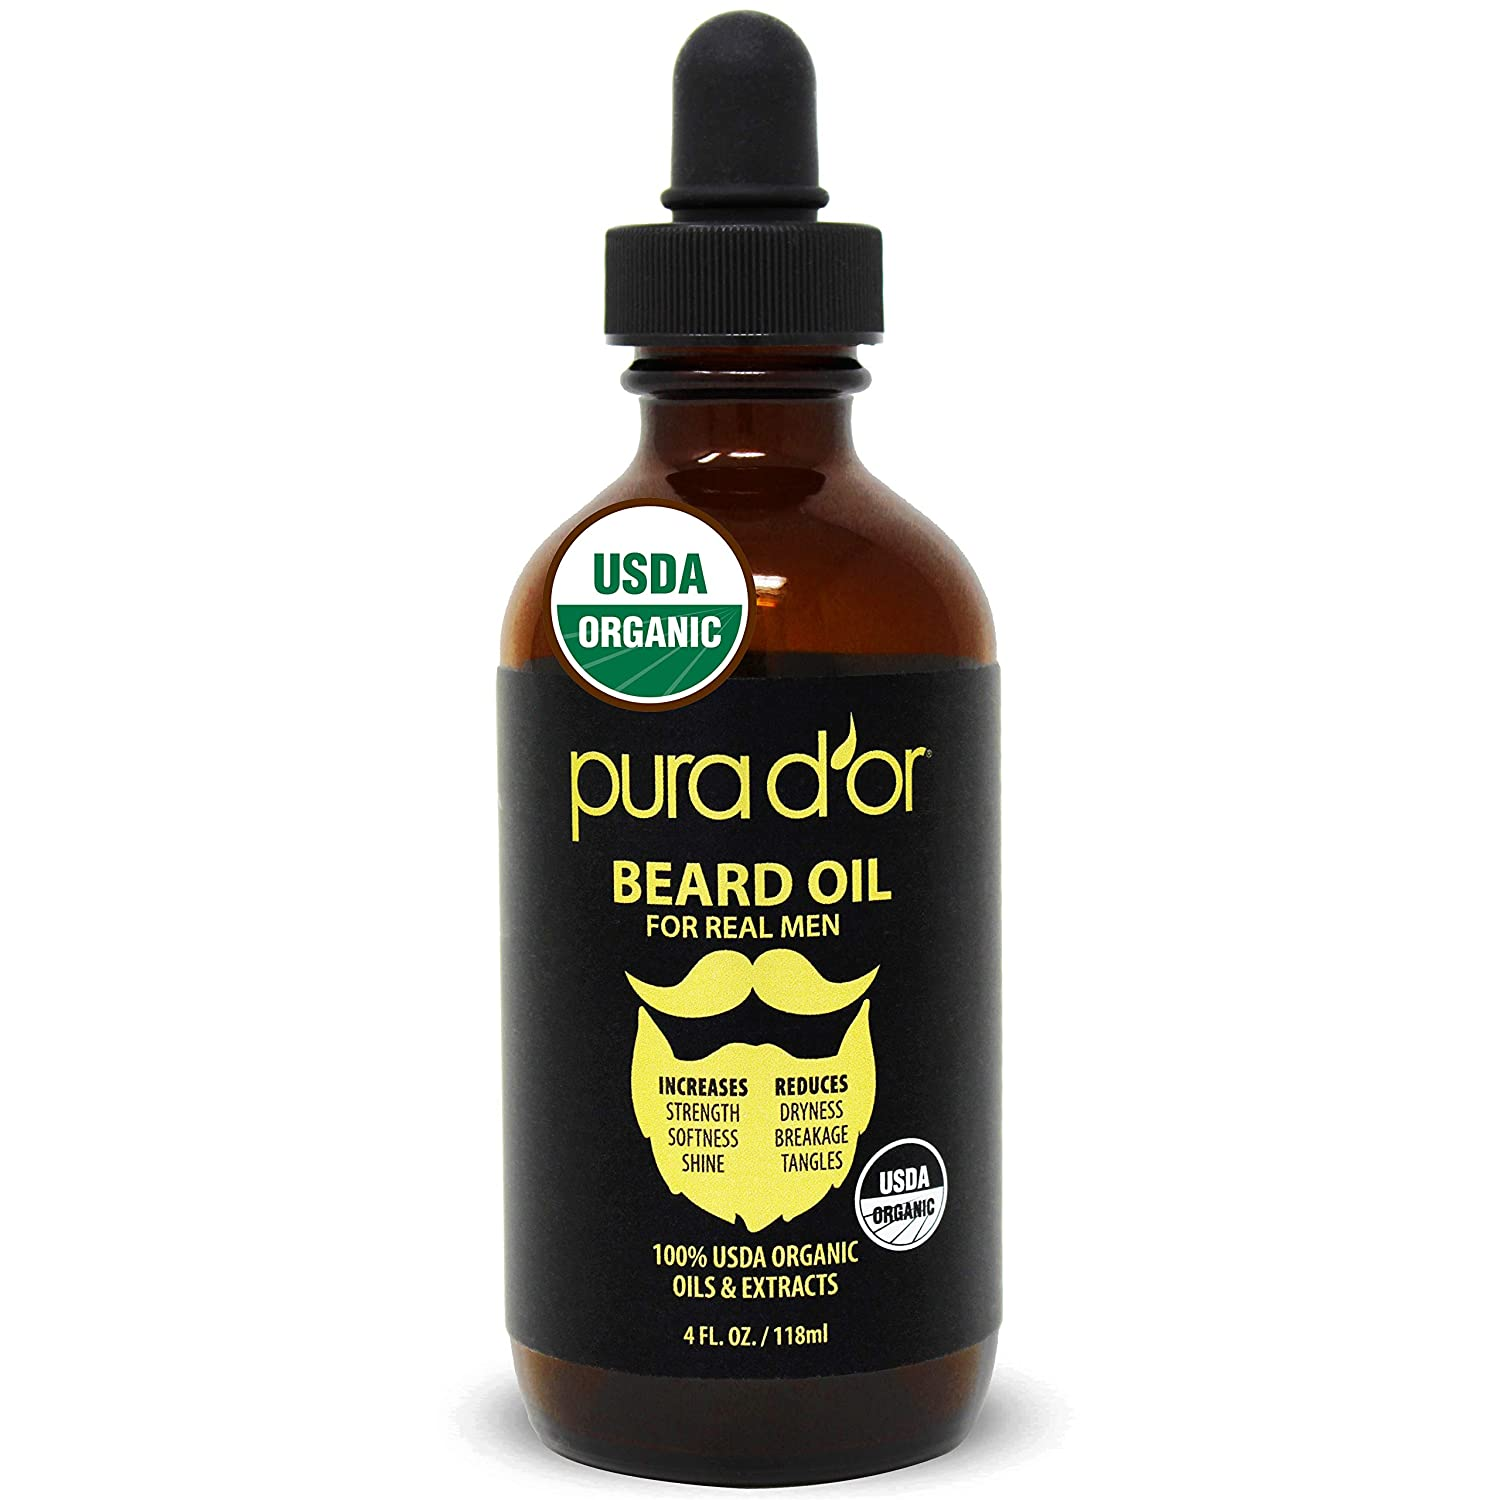 Pura d'Or beard oil - BEST beard oil OVERALL